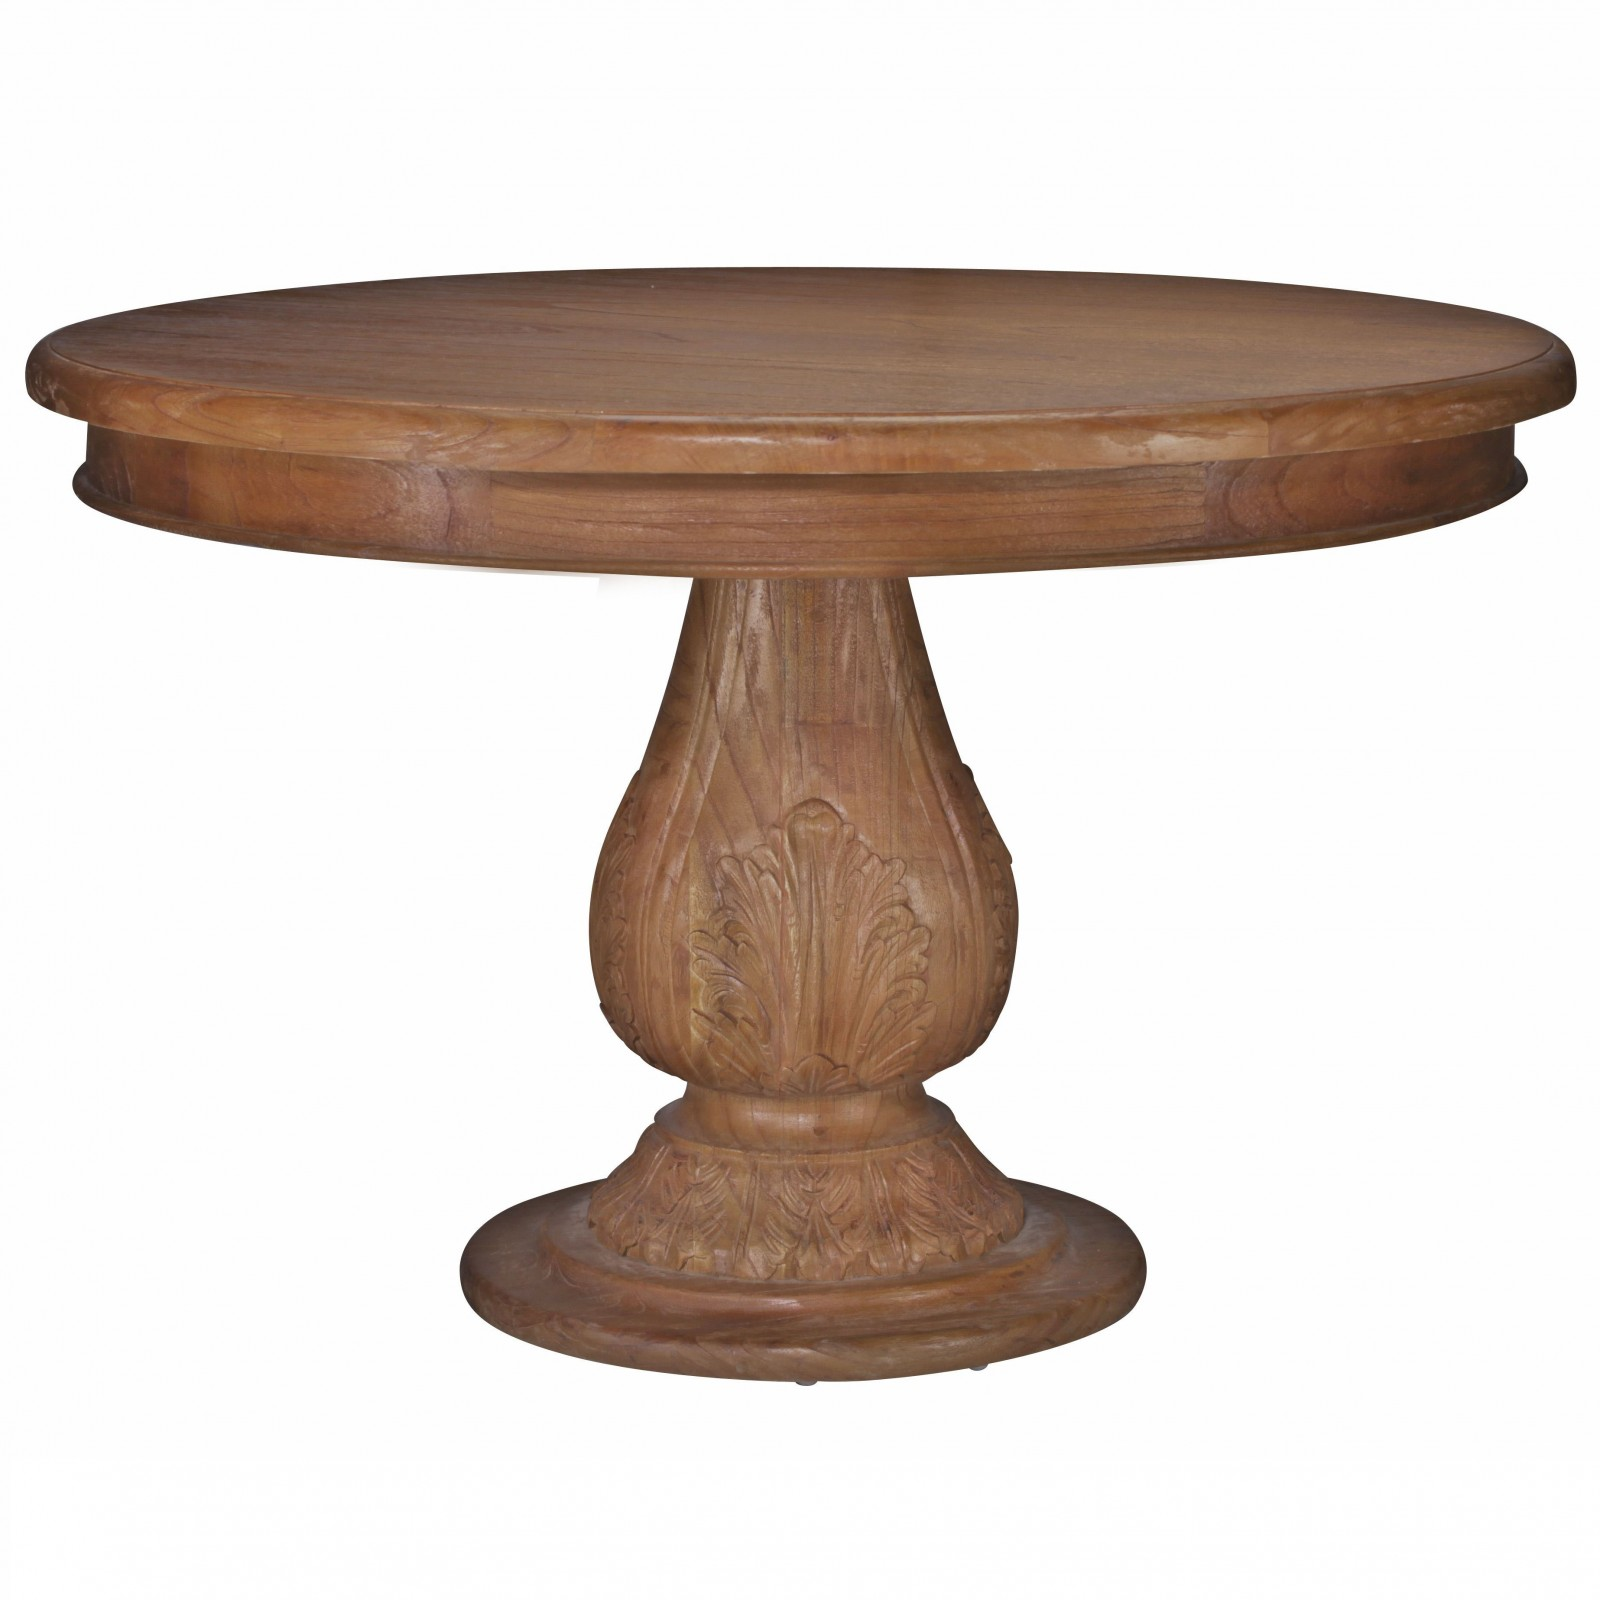 Acorn Round Pedestal Dining Table120cm